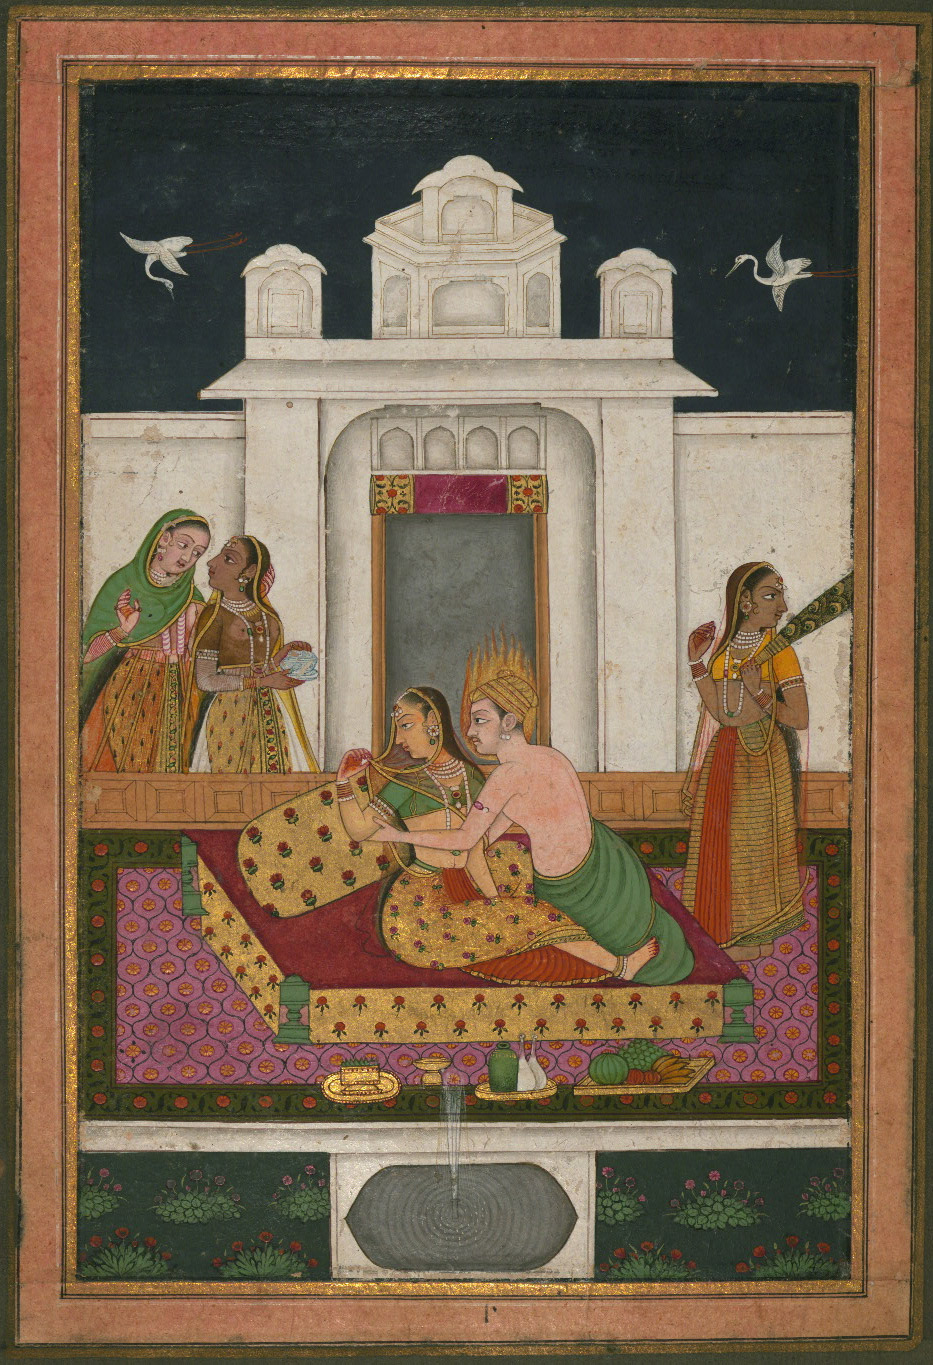 Dipaka Raga - Miniature Painting, Deccan School, Ragamala series, 19th Century